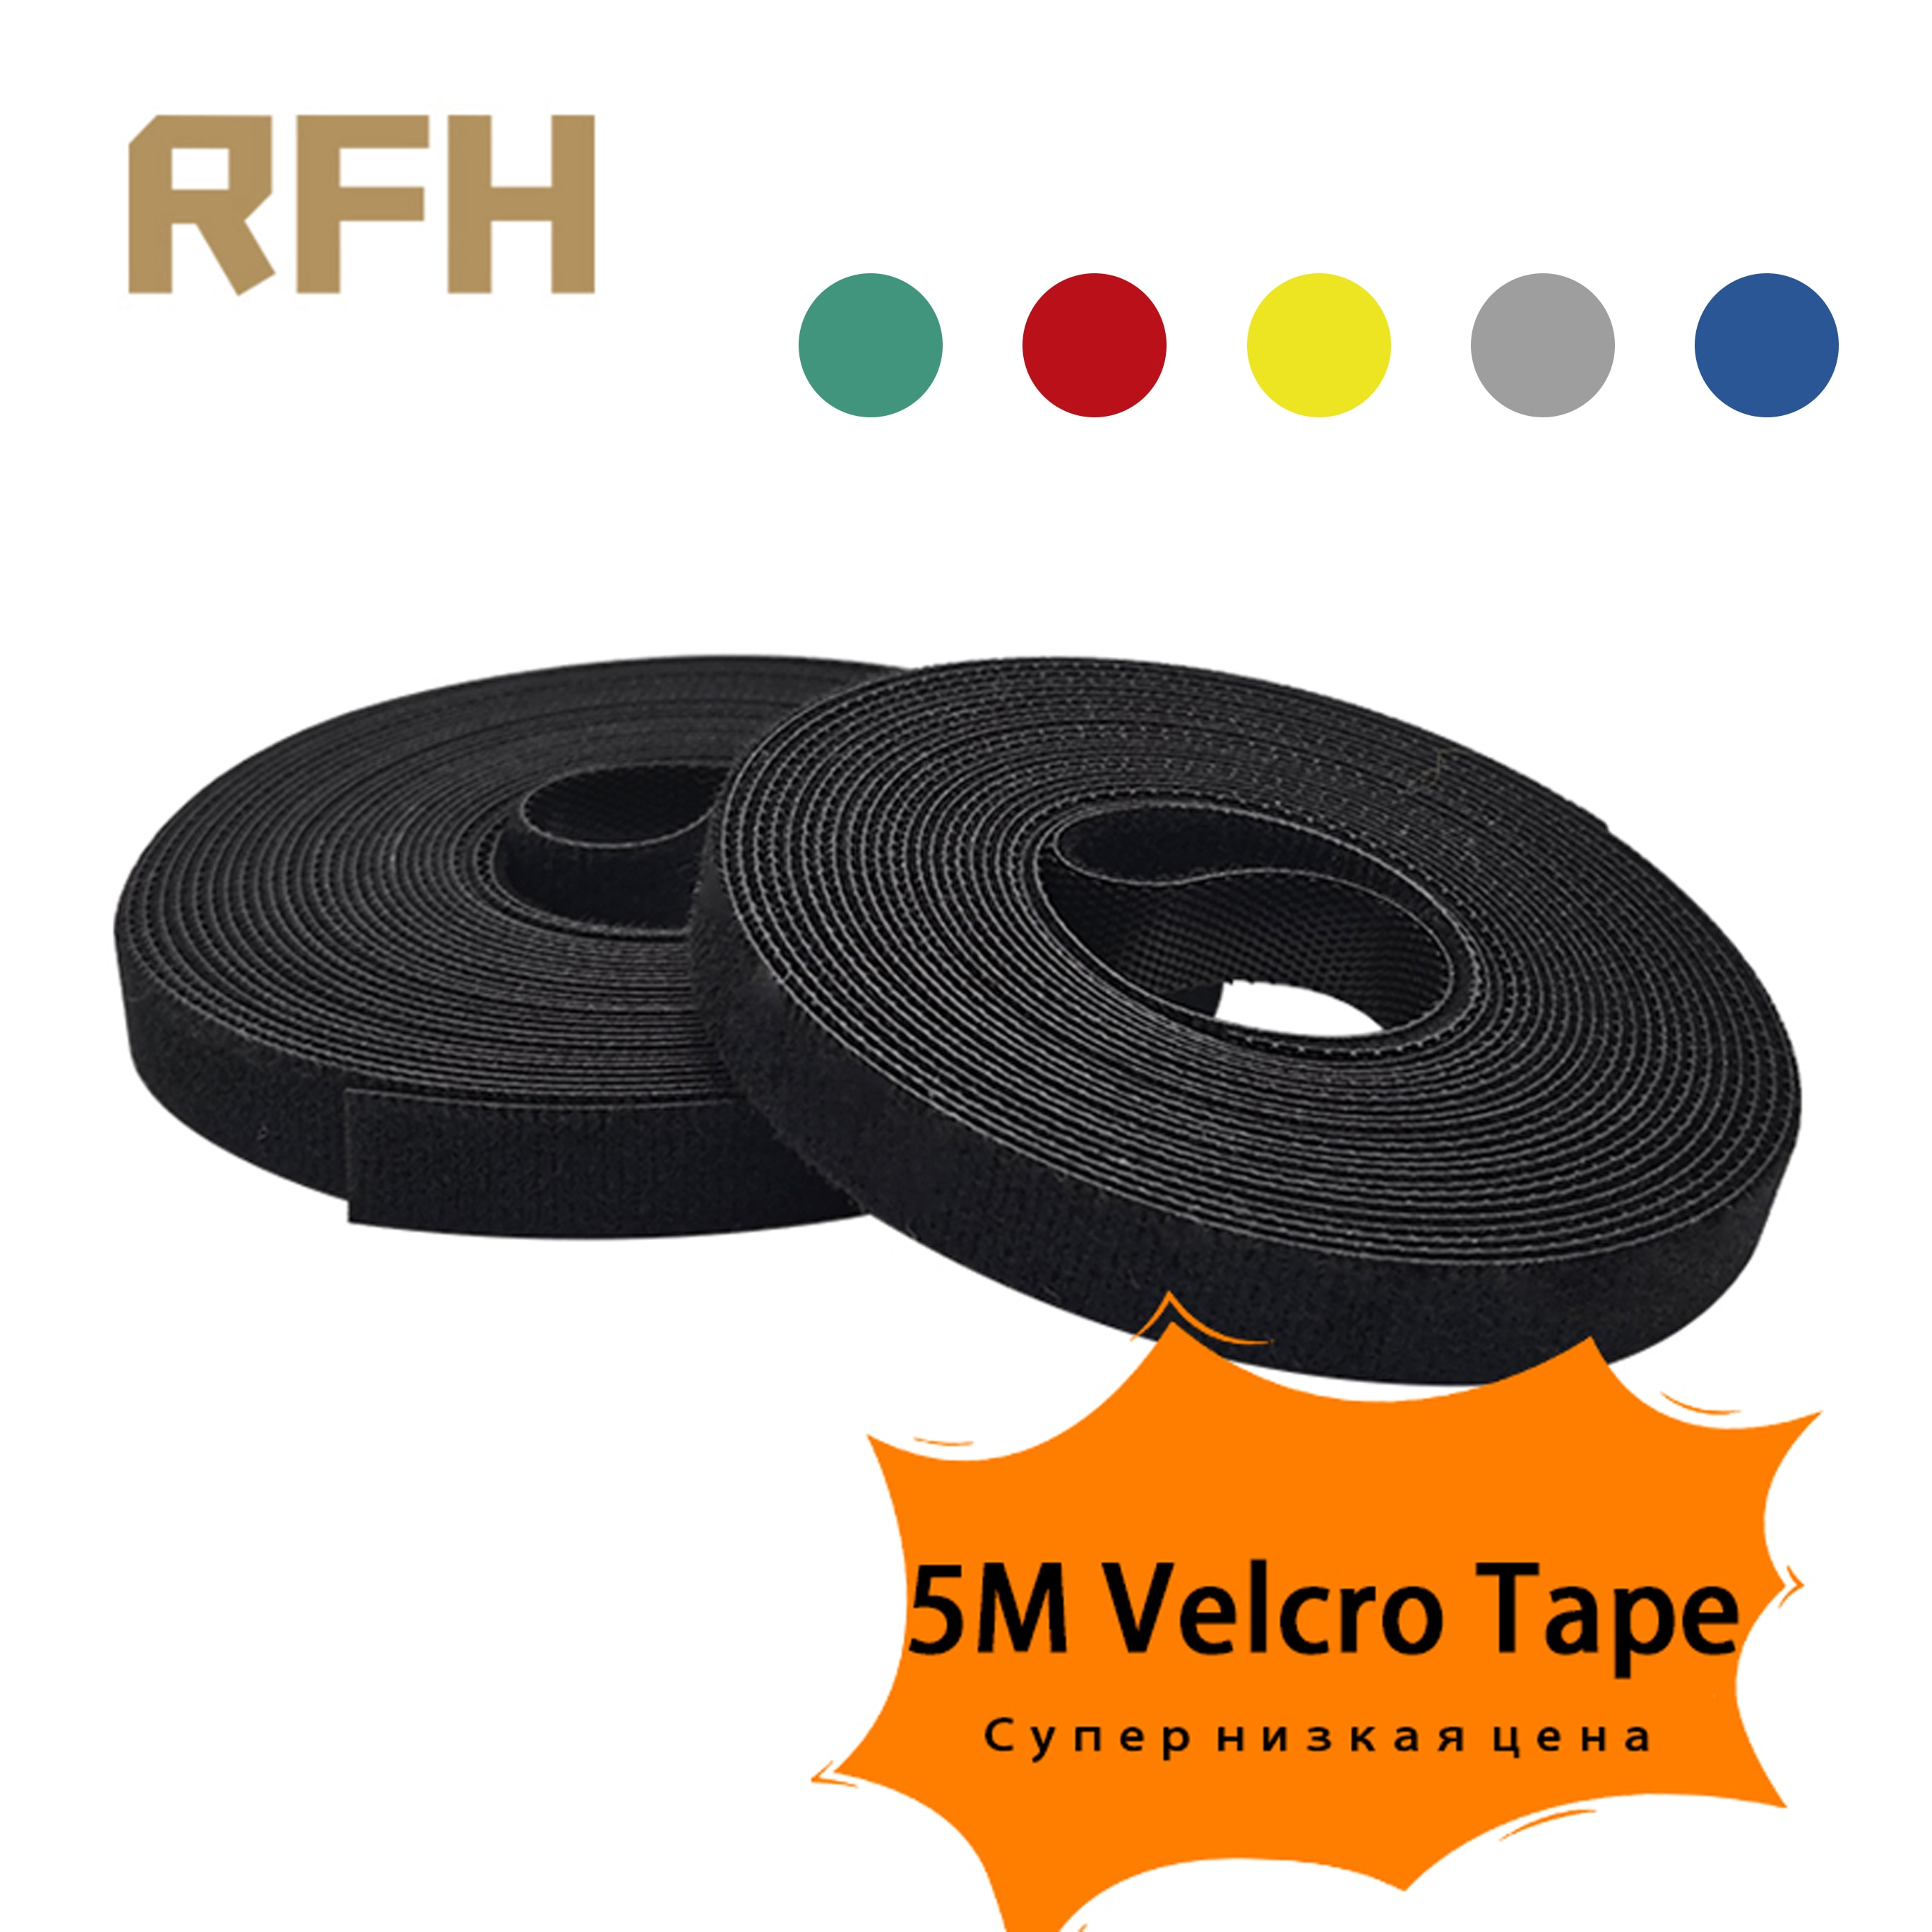 1 PCS 5M/Roll 10mm Velcros Self Adhesive Fastener Tape Reusable Strong Hooks Loops Cable Tie Magic tape DIY Accessories